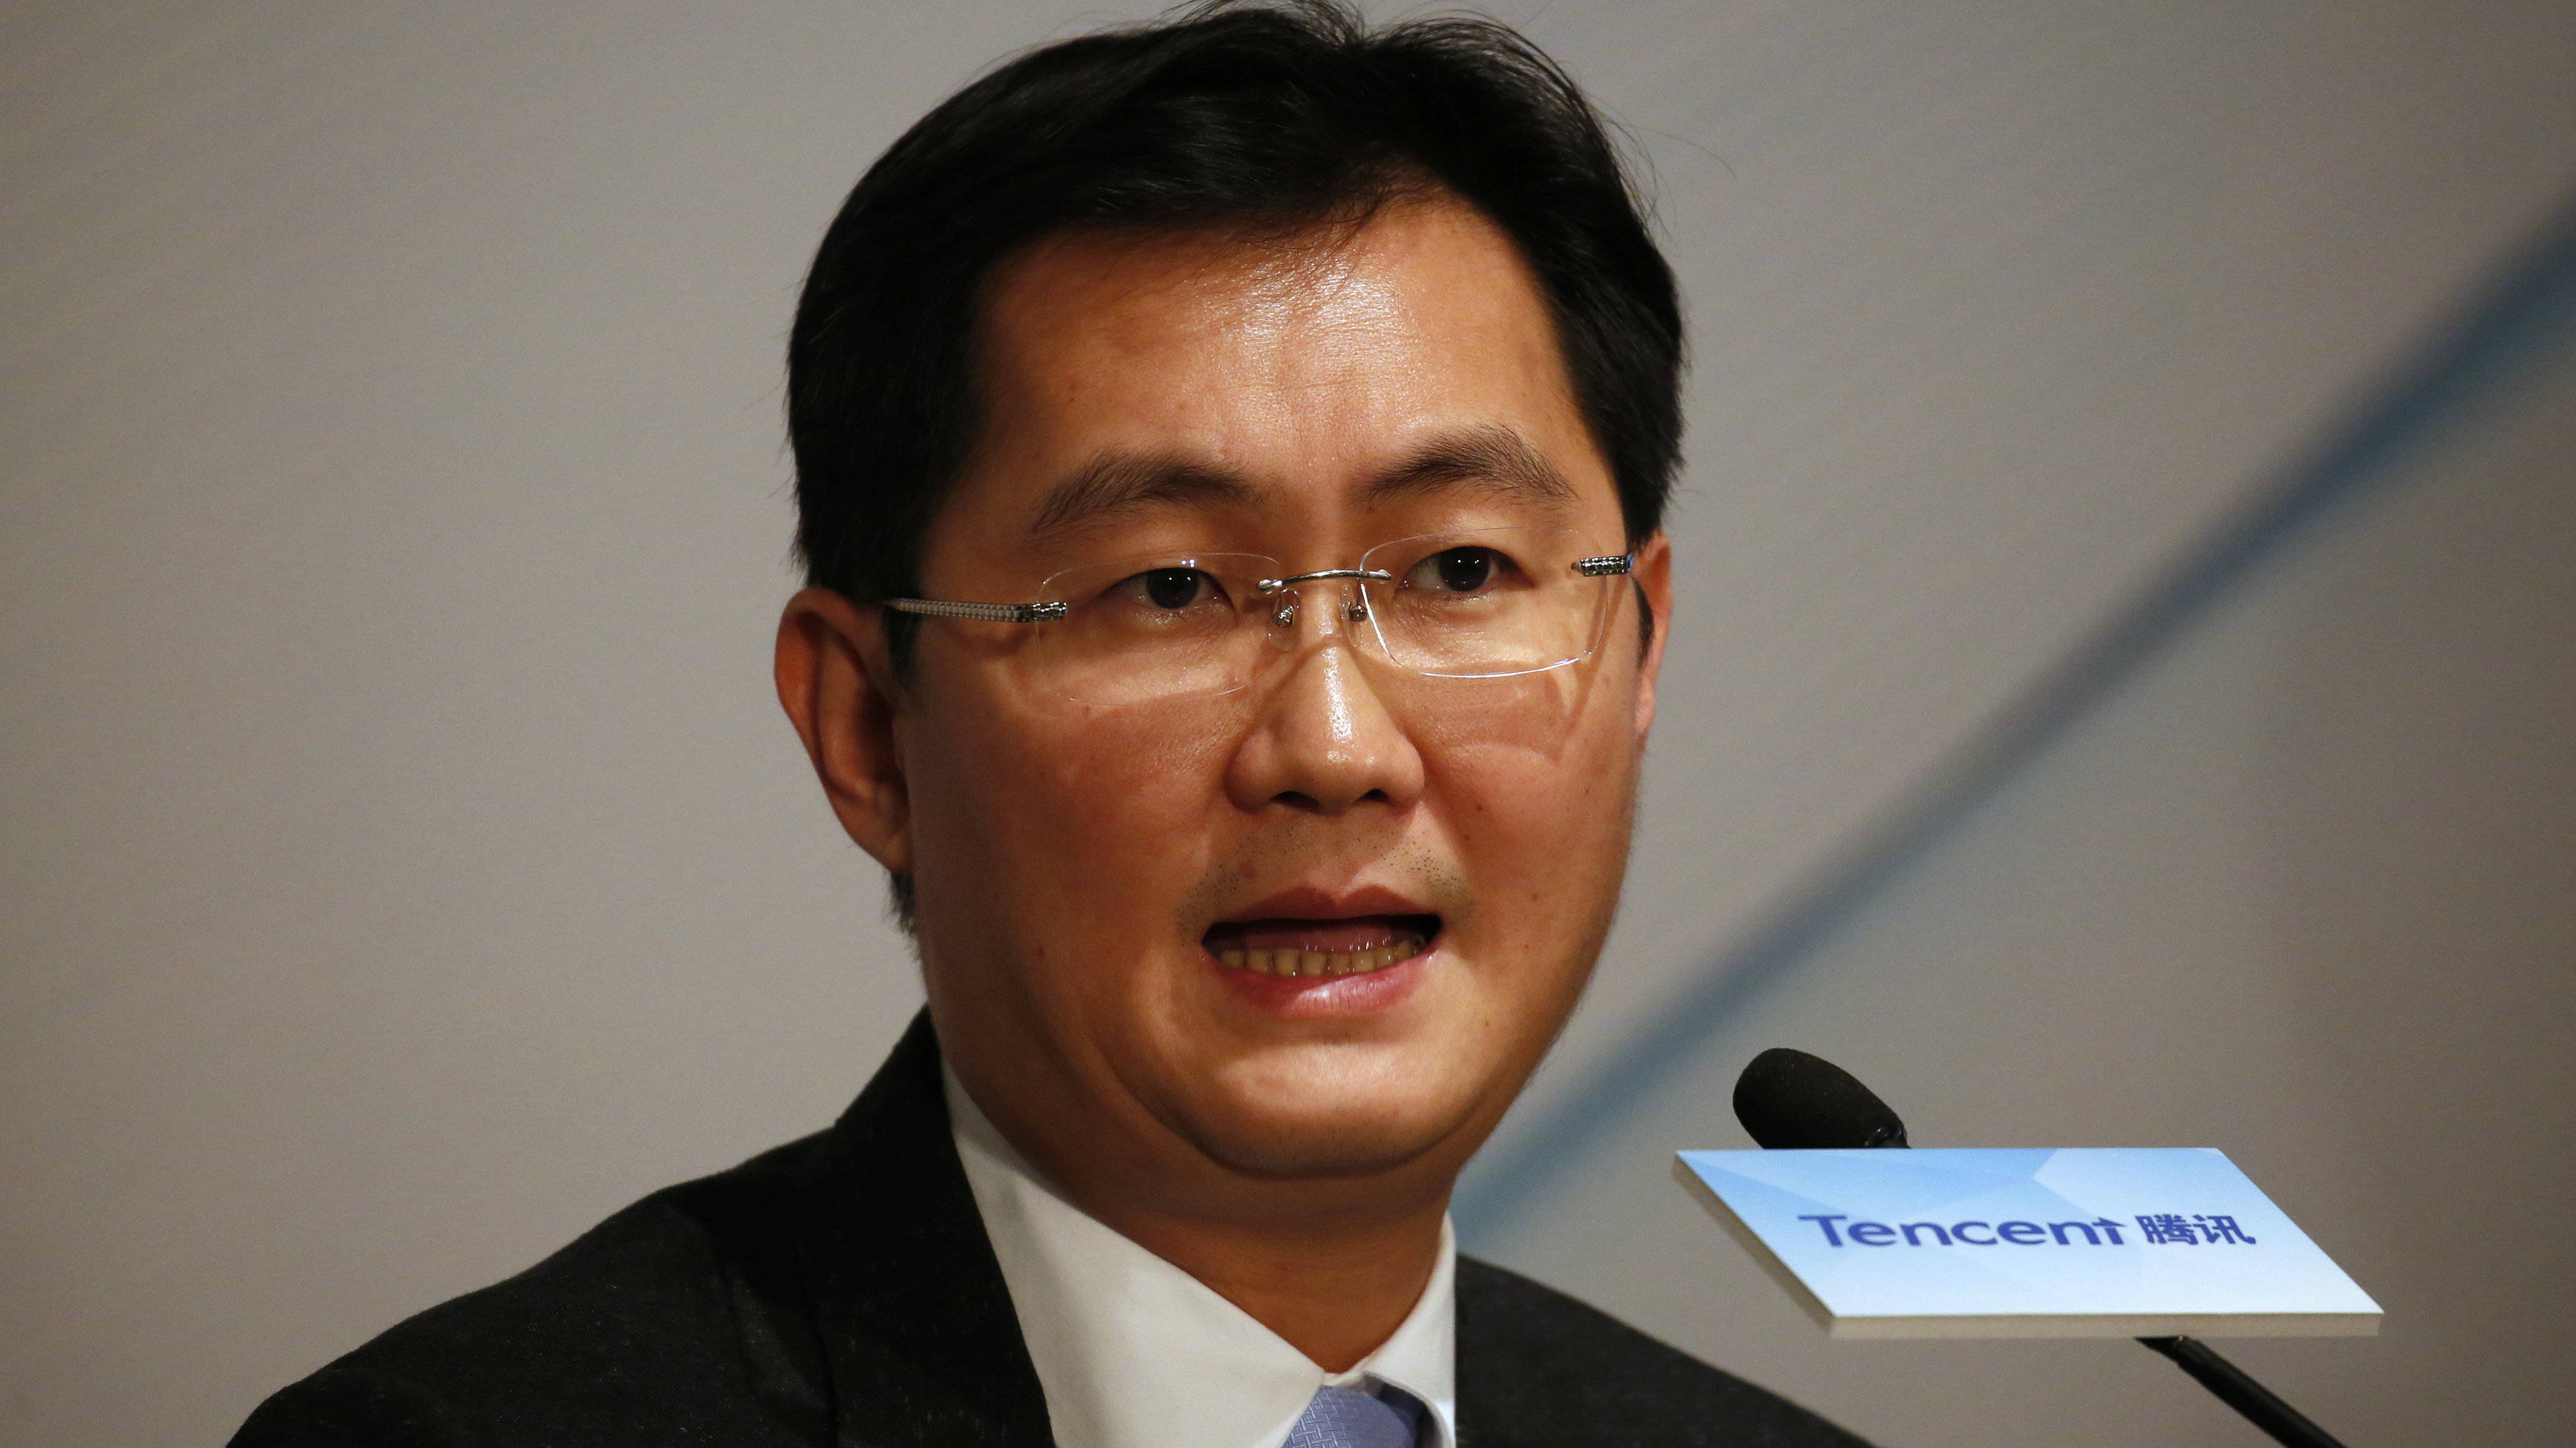 Tencent Chairman and Chief Executive Officer Pony Ma Huateng speaks during a news conference announcing the company's results in Hong Kong